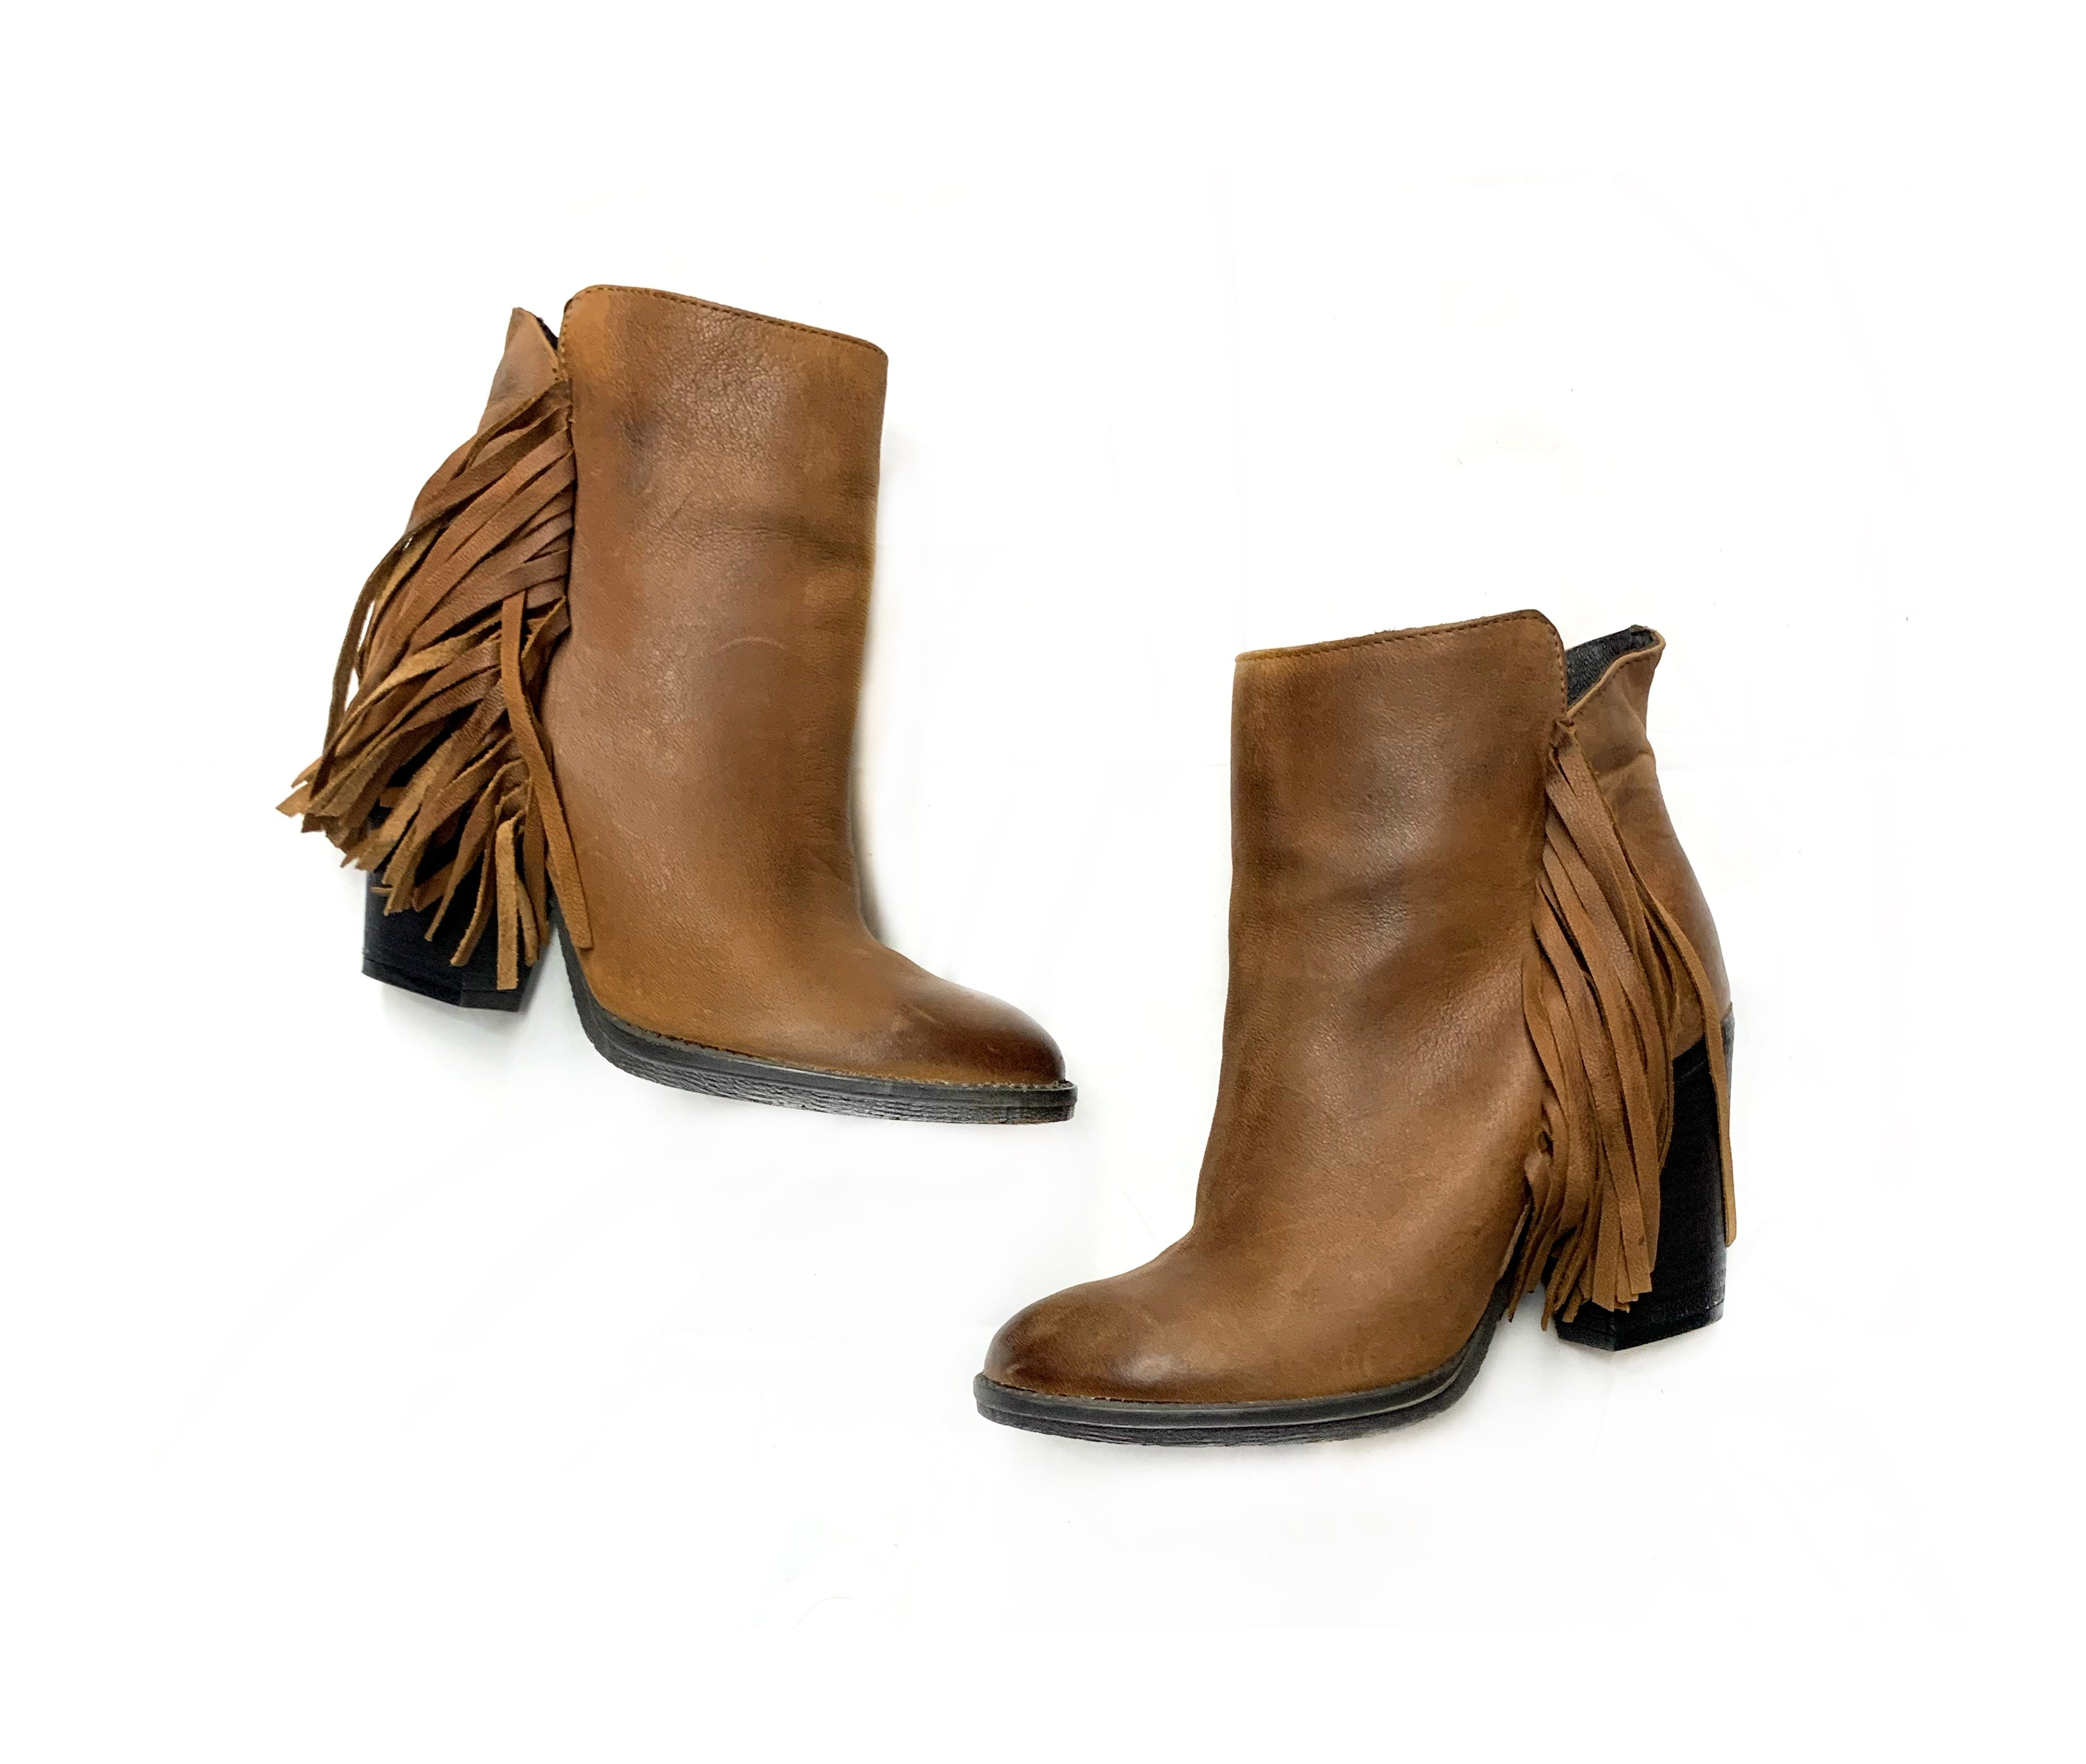 Primary Photo - BRAND: STEVE MADDEN<BR>STYLE: BOOTS ANKLE<BR>COLOR: BROWN<BR>SIZE: 7.5<BR>SKU: 196-14511-43914